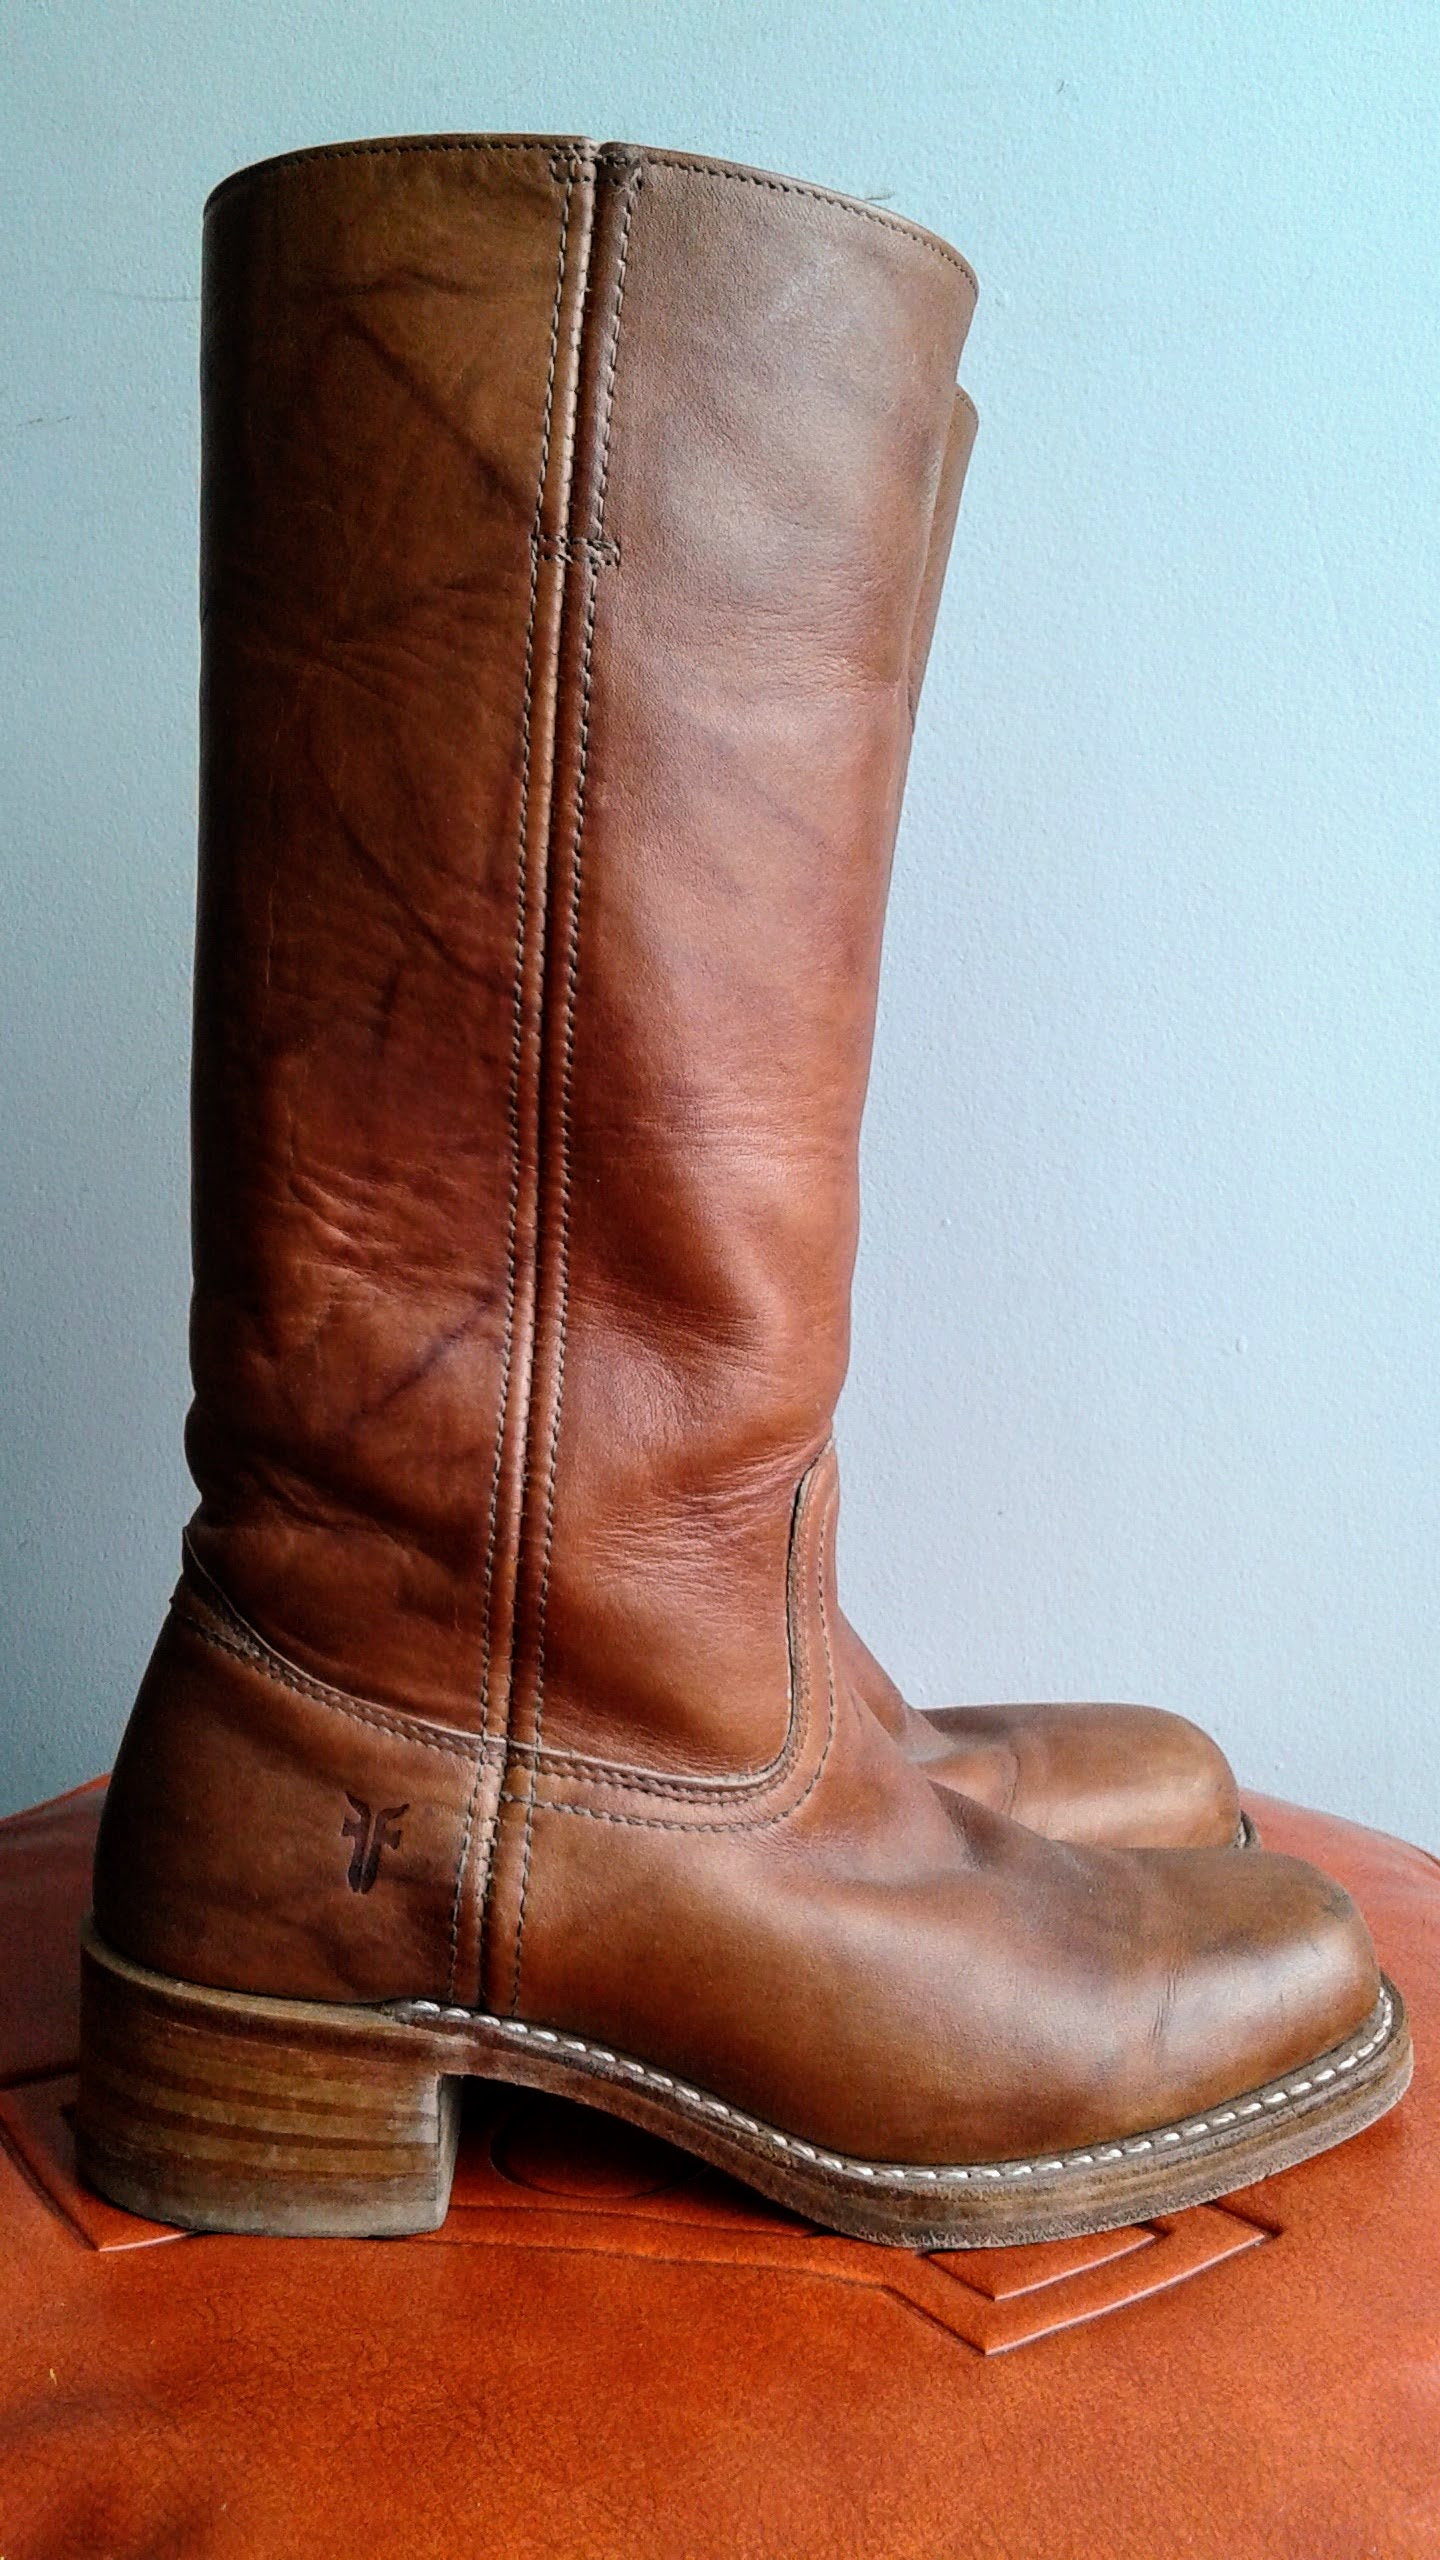 Frye boots; S7.5, $95